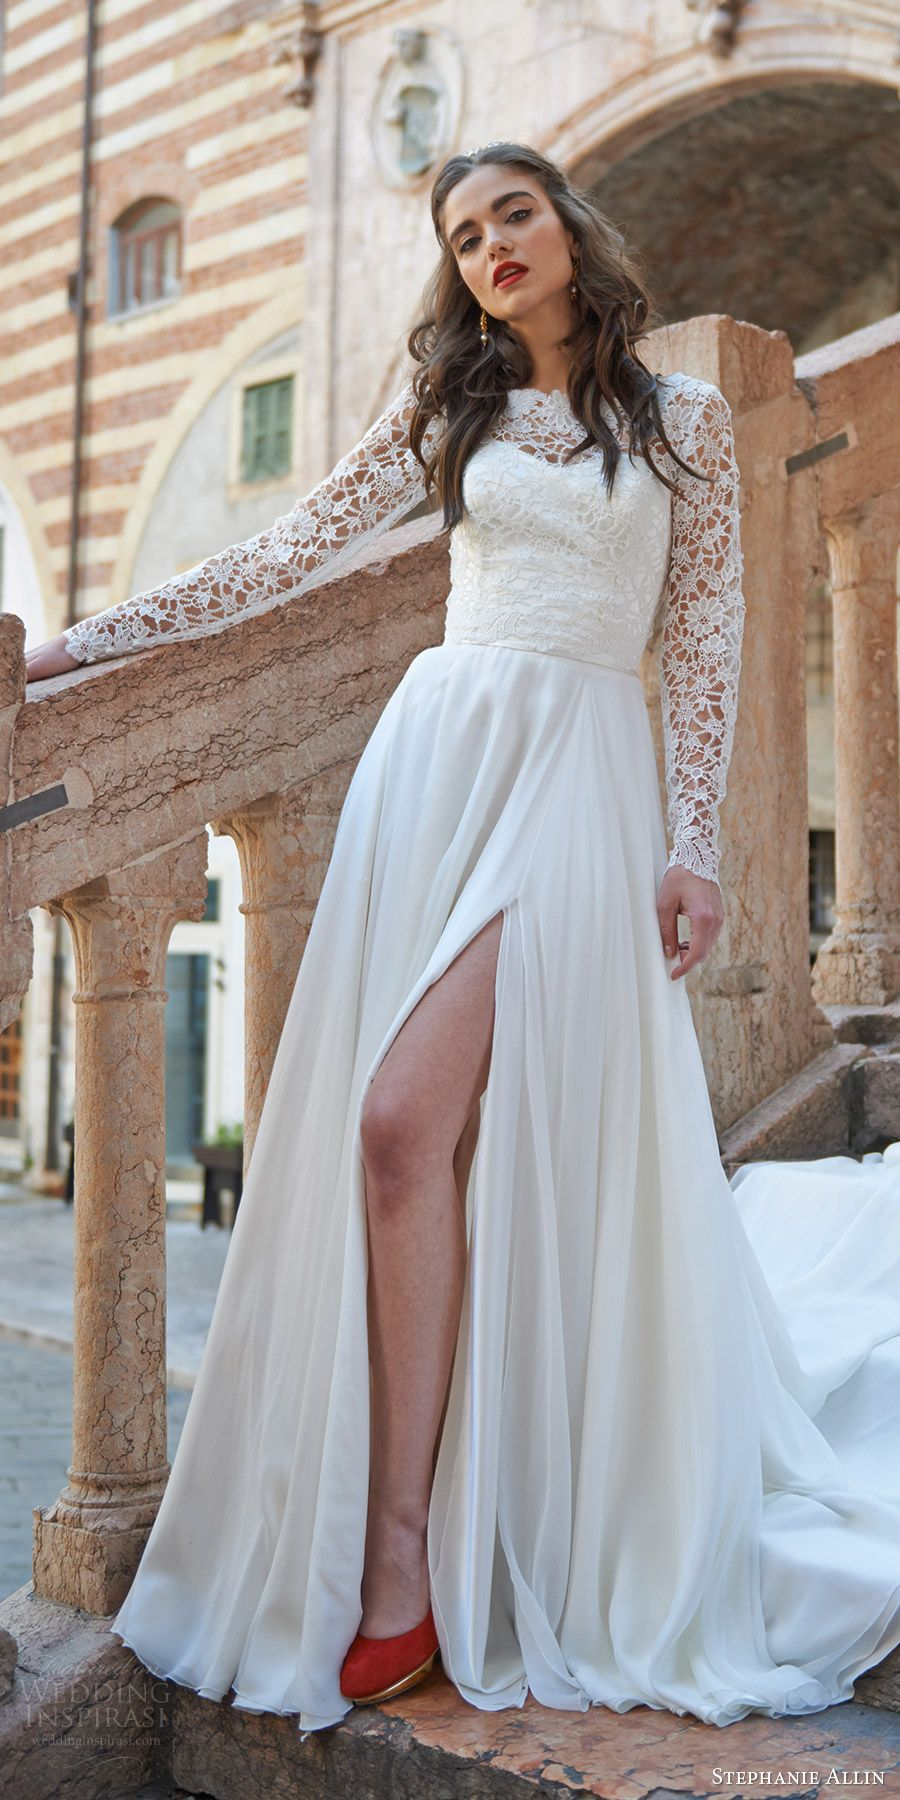 Fullsize Of Aline Wedding Dress